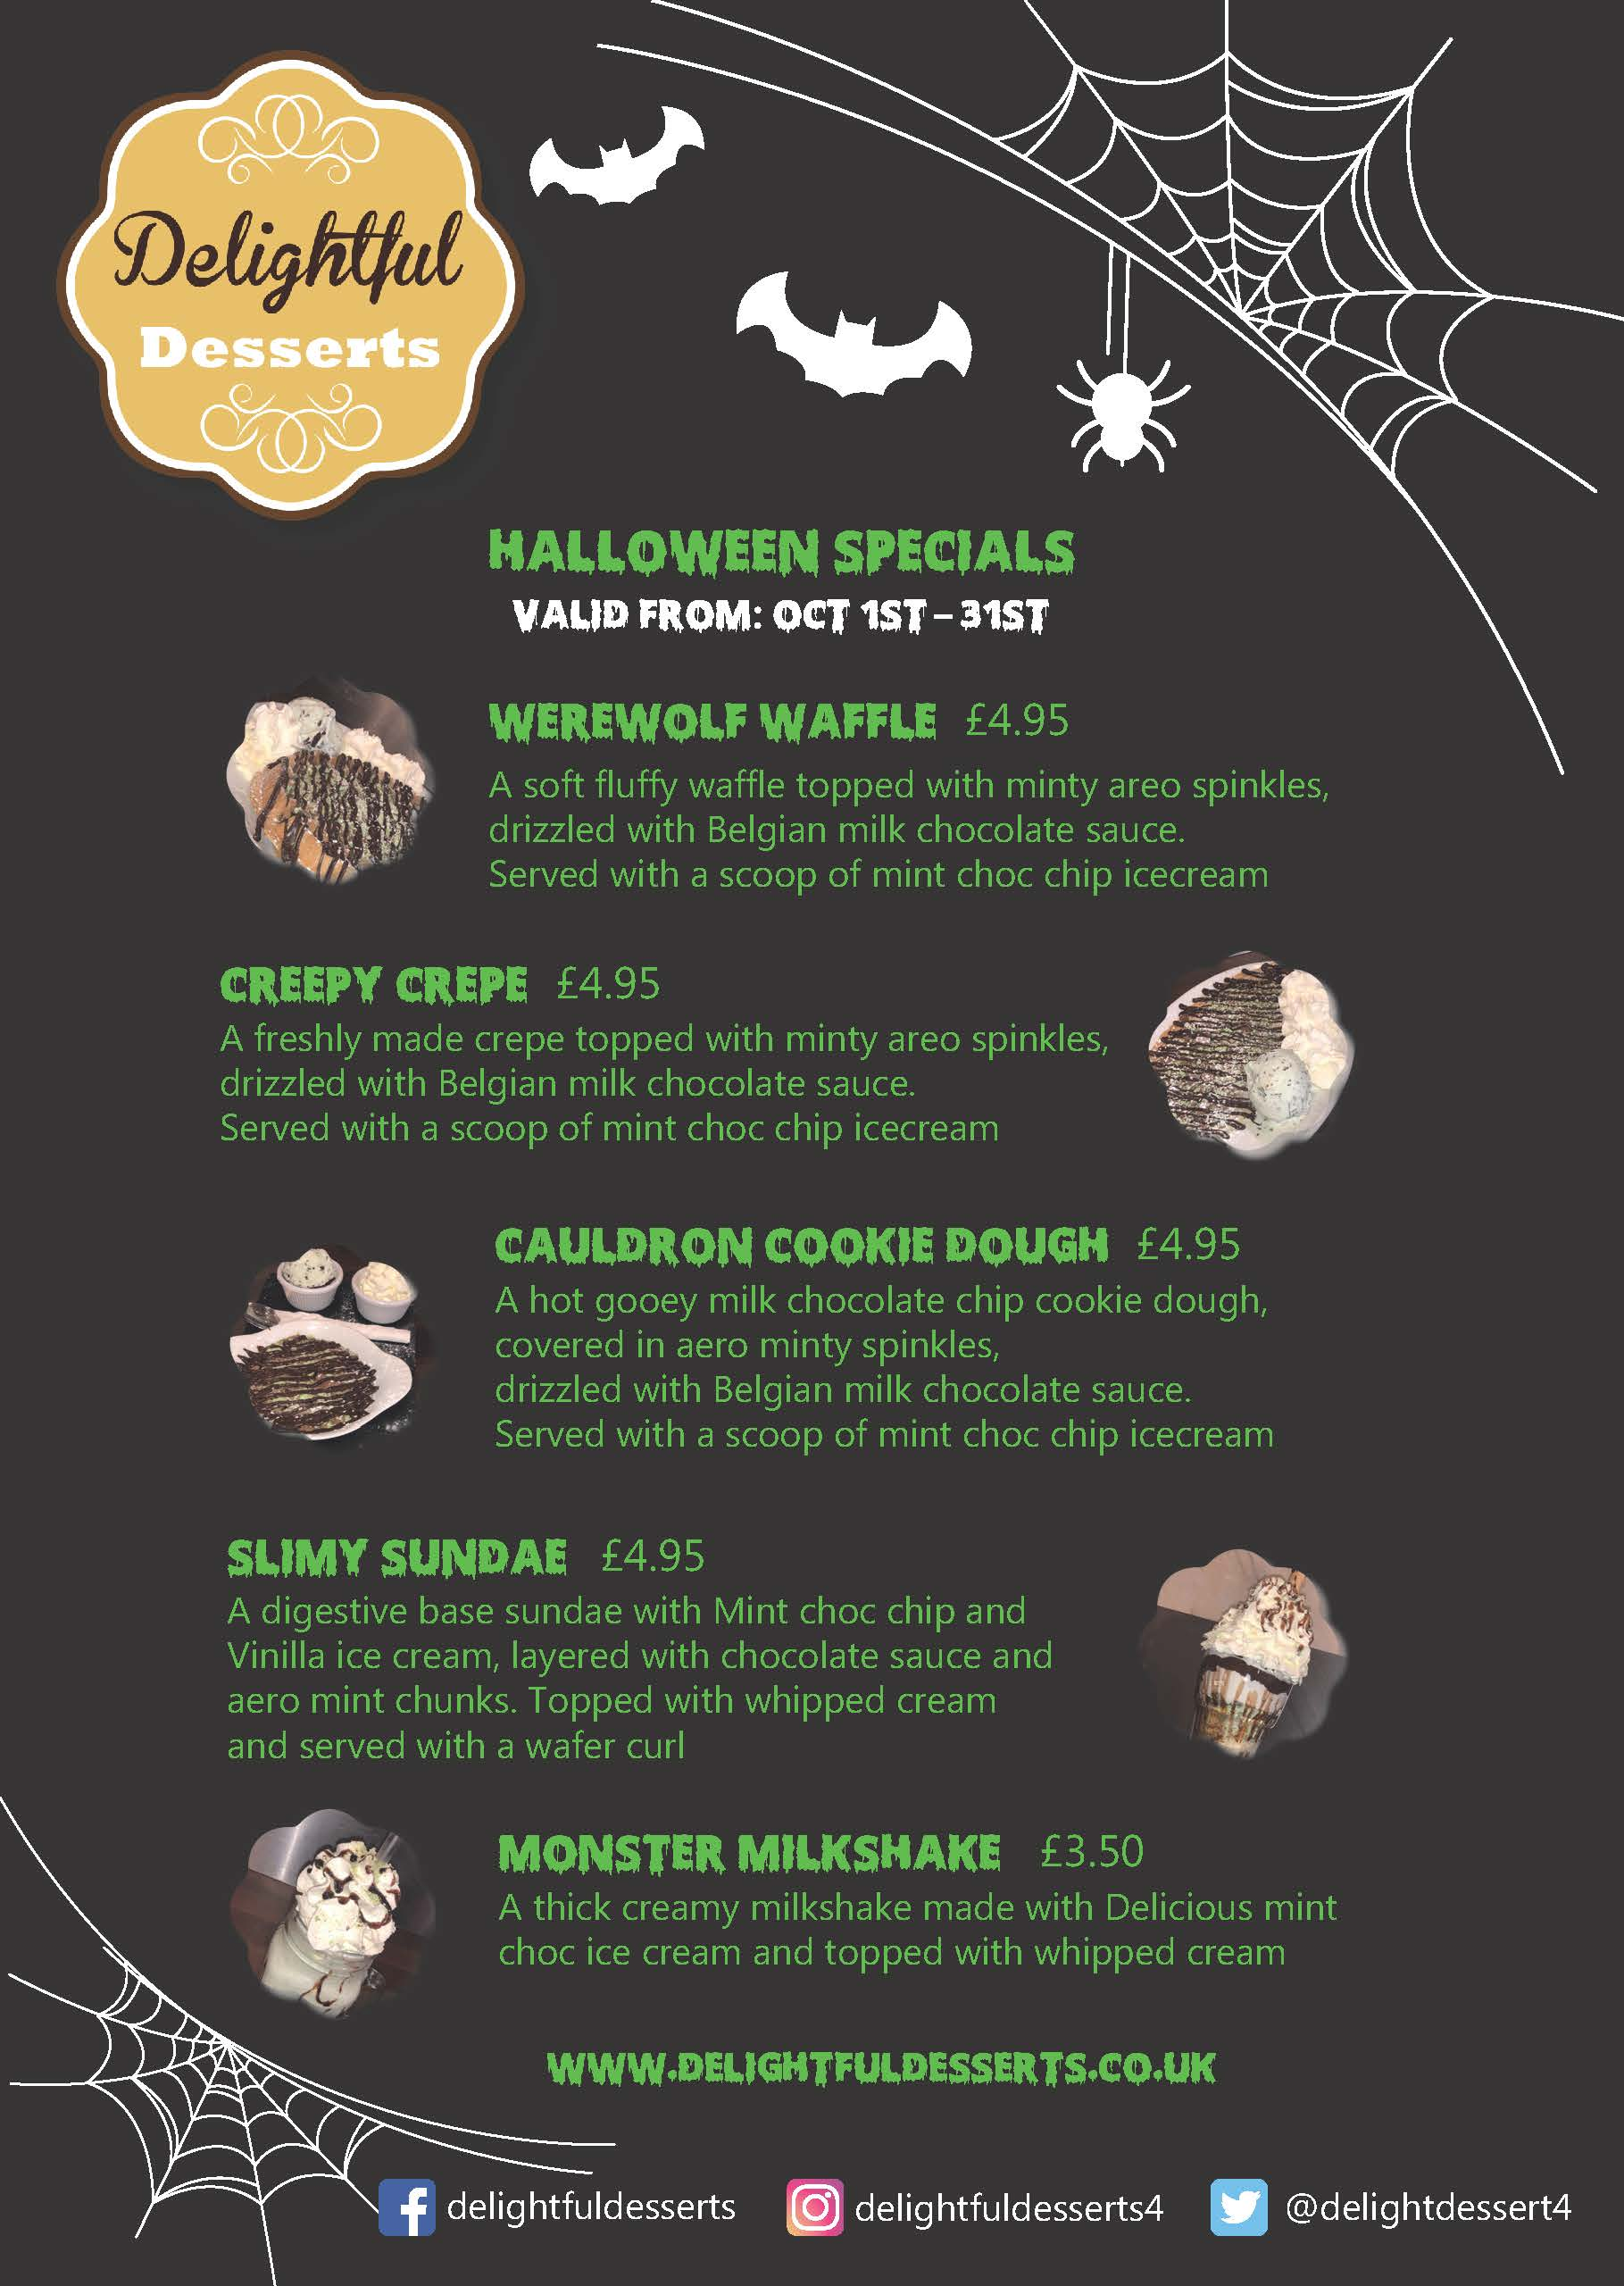 Halloween Menu Specials for October from 1st-31st. Featuring: WereWolf Waffle, Creepy Crepe, Cauldron Cookie Dough and Slimy Sundae